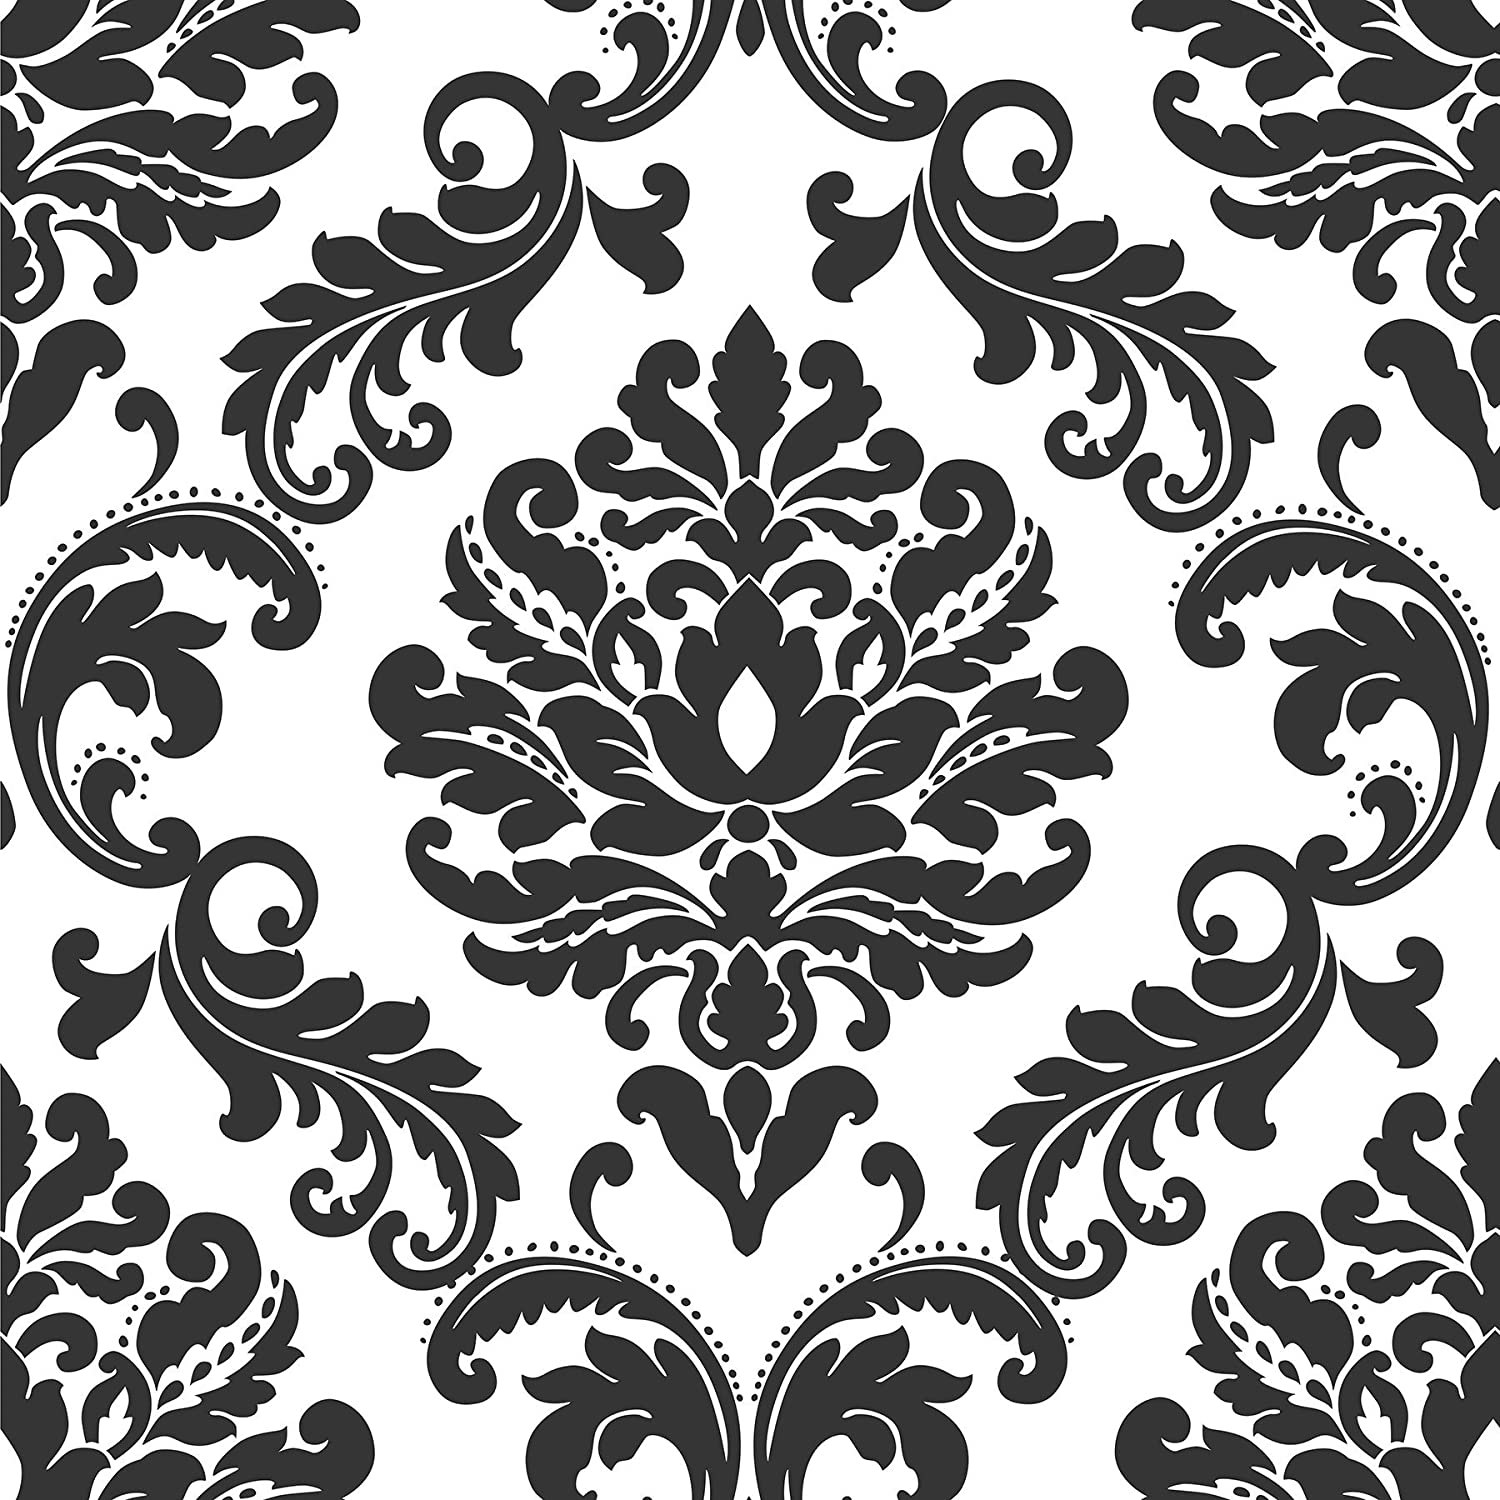 Ariel black and white damask peel and stick wallpaper wallpaper borders amazon com